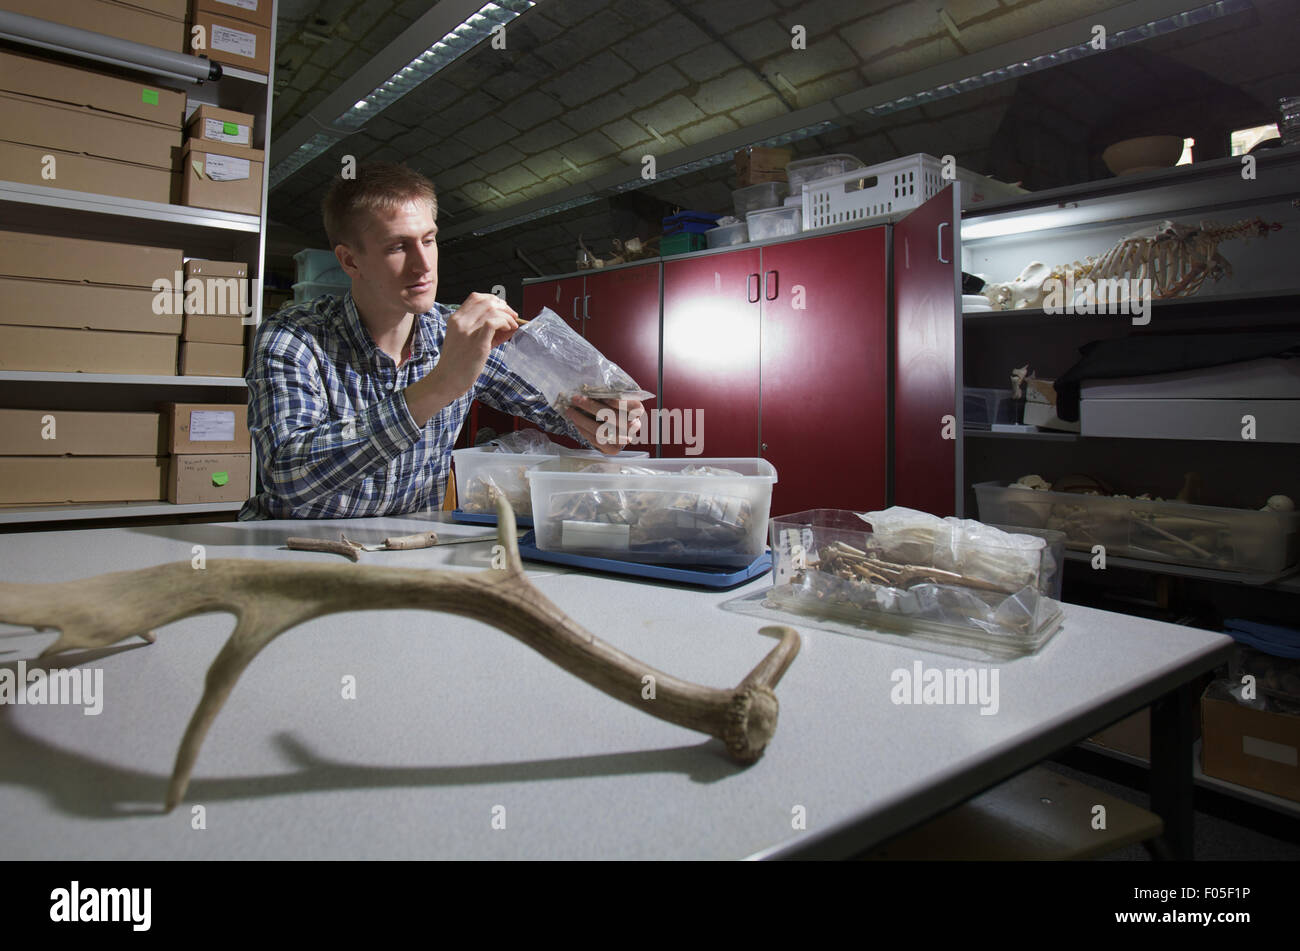 archaeology student working with artefacts - Stock Image